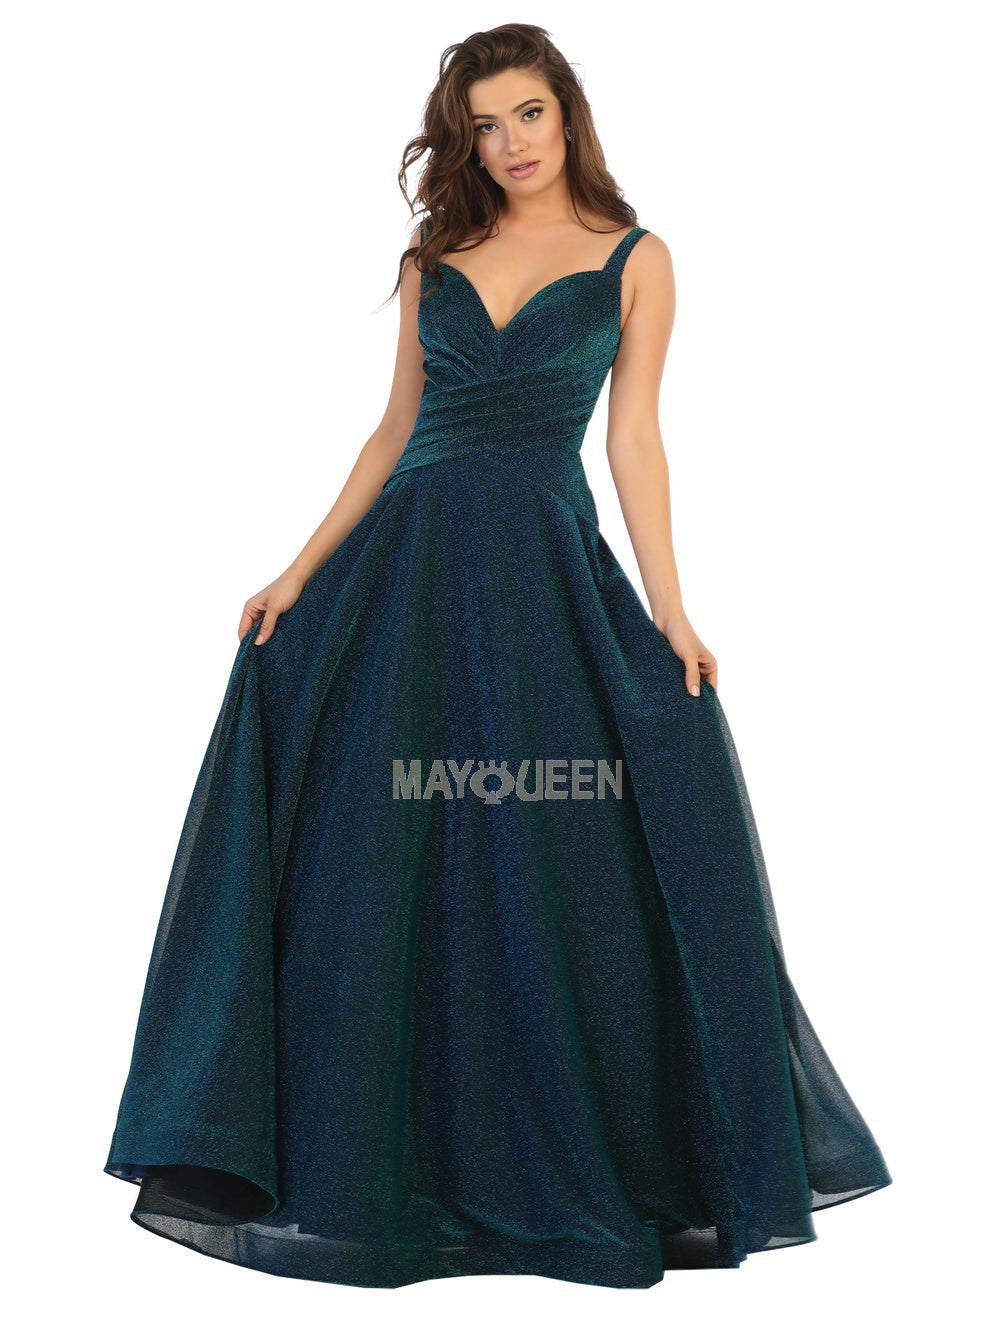 Mayqueen Size Chart E MQ 7747 - Metallic A-Line Ballgown with Sweetheart Neck & Criss Cross Bodice - Diggz Prom